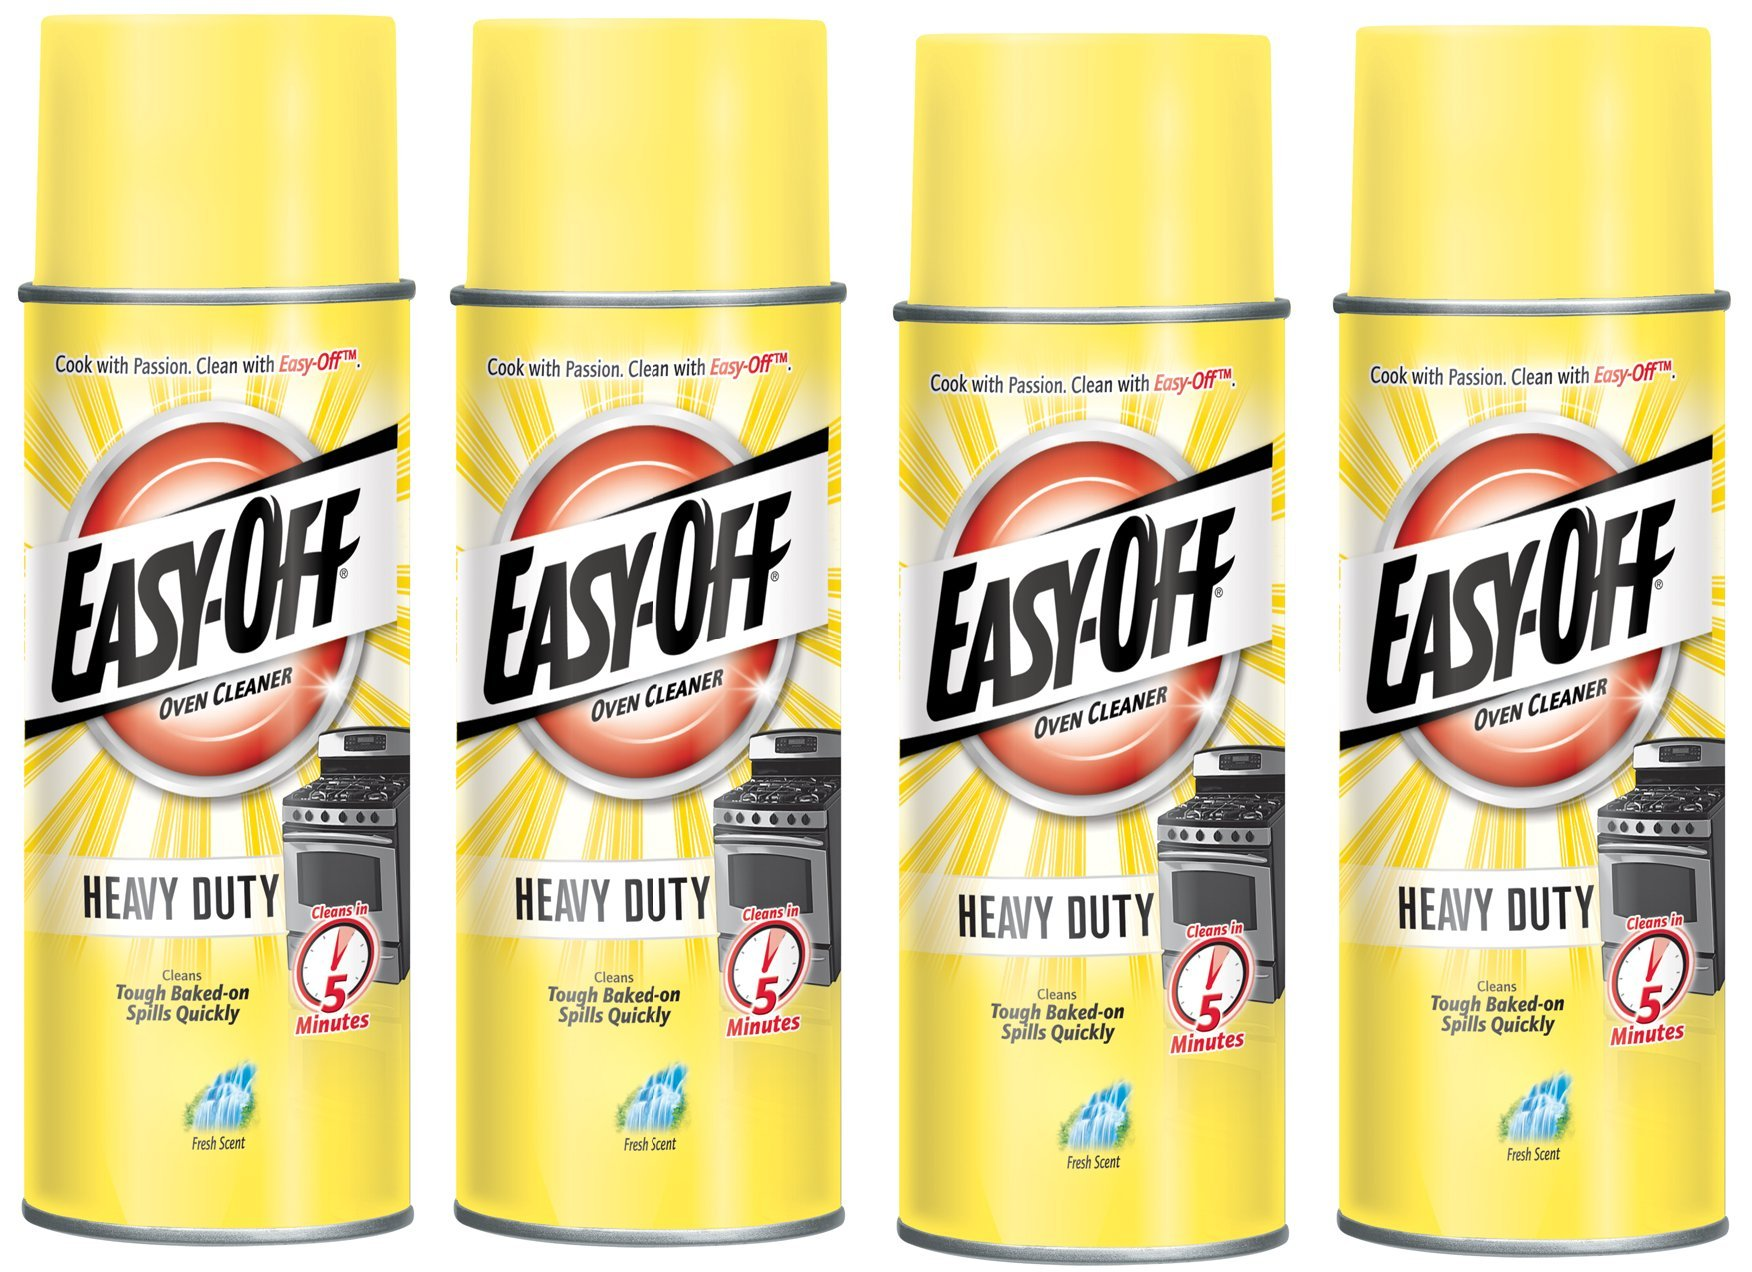 Easy-Off Heavy Duty Fresh Scent Oven Cleaner 14.5 oz (4 Pack) Made in USA by Easy Off